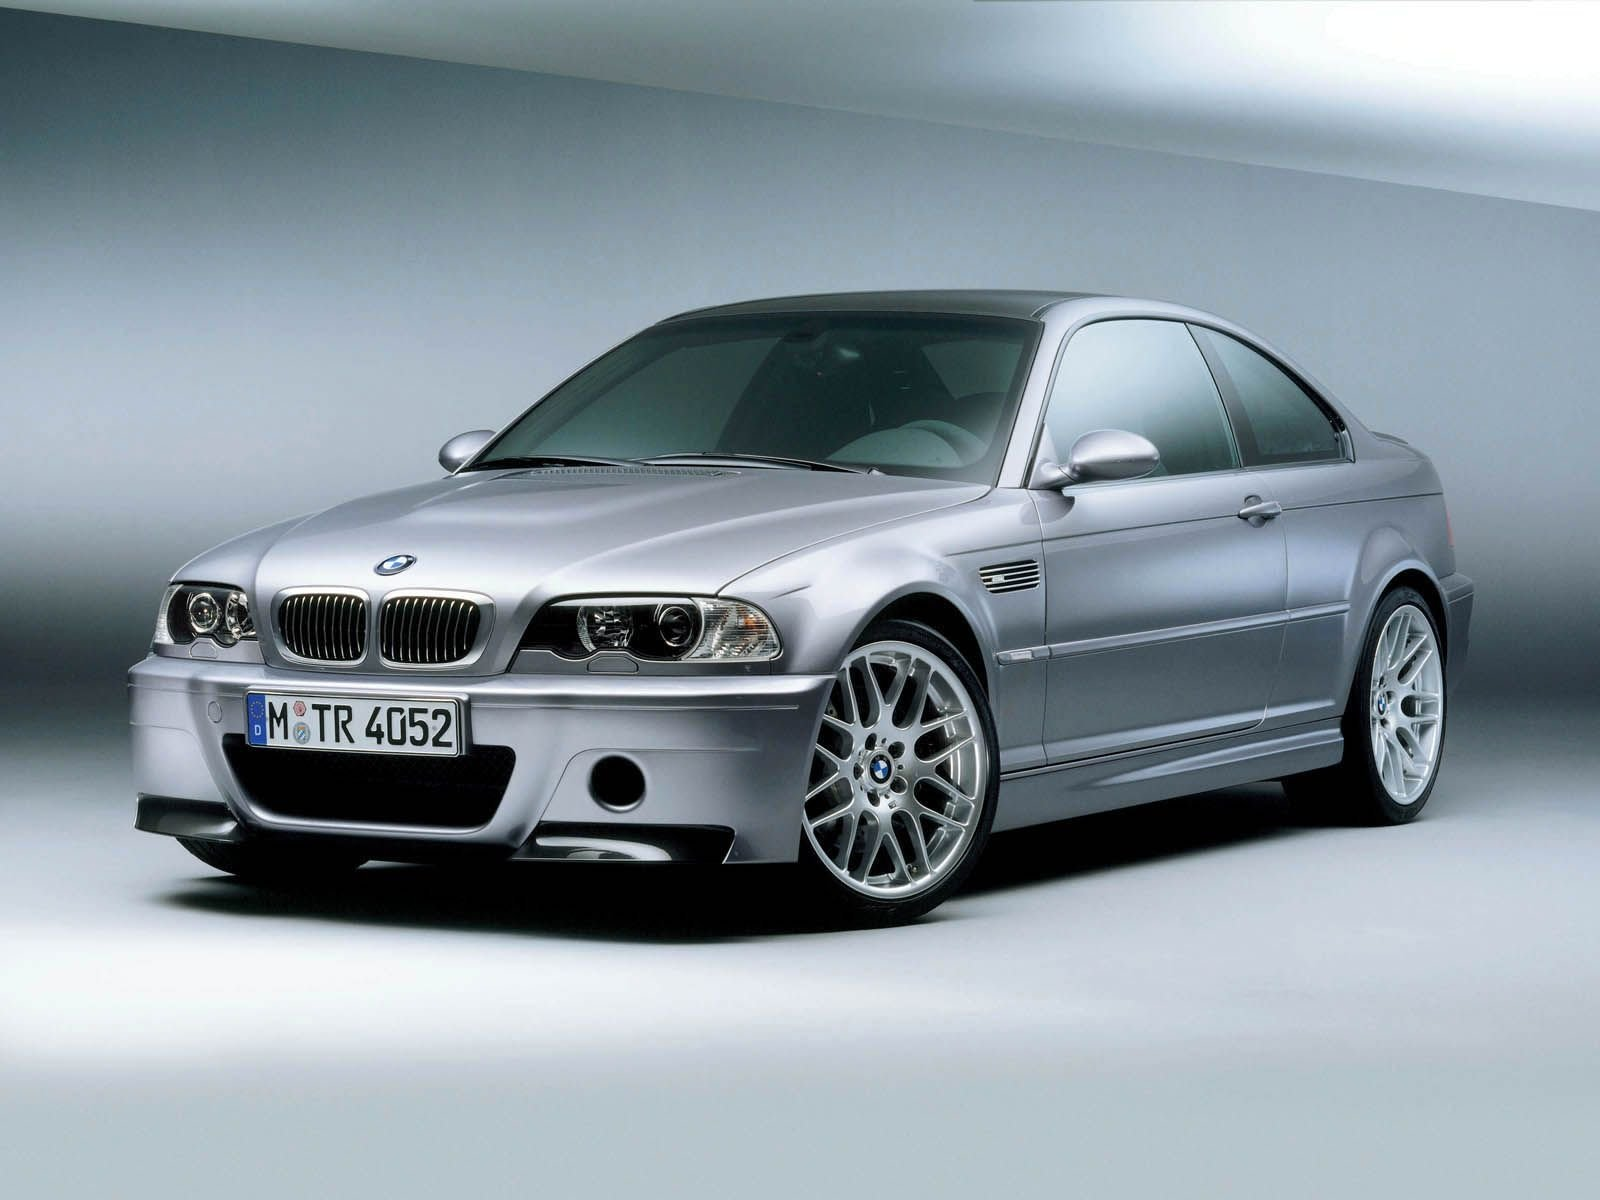 2001 bmw m3 csl review top speed. Black Bedroom Furniture Sets. Home Design Ideas